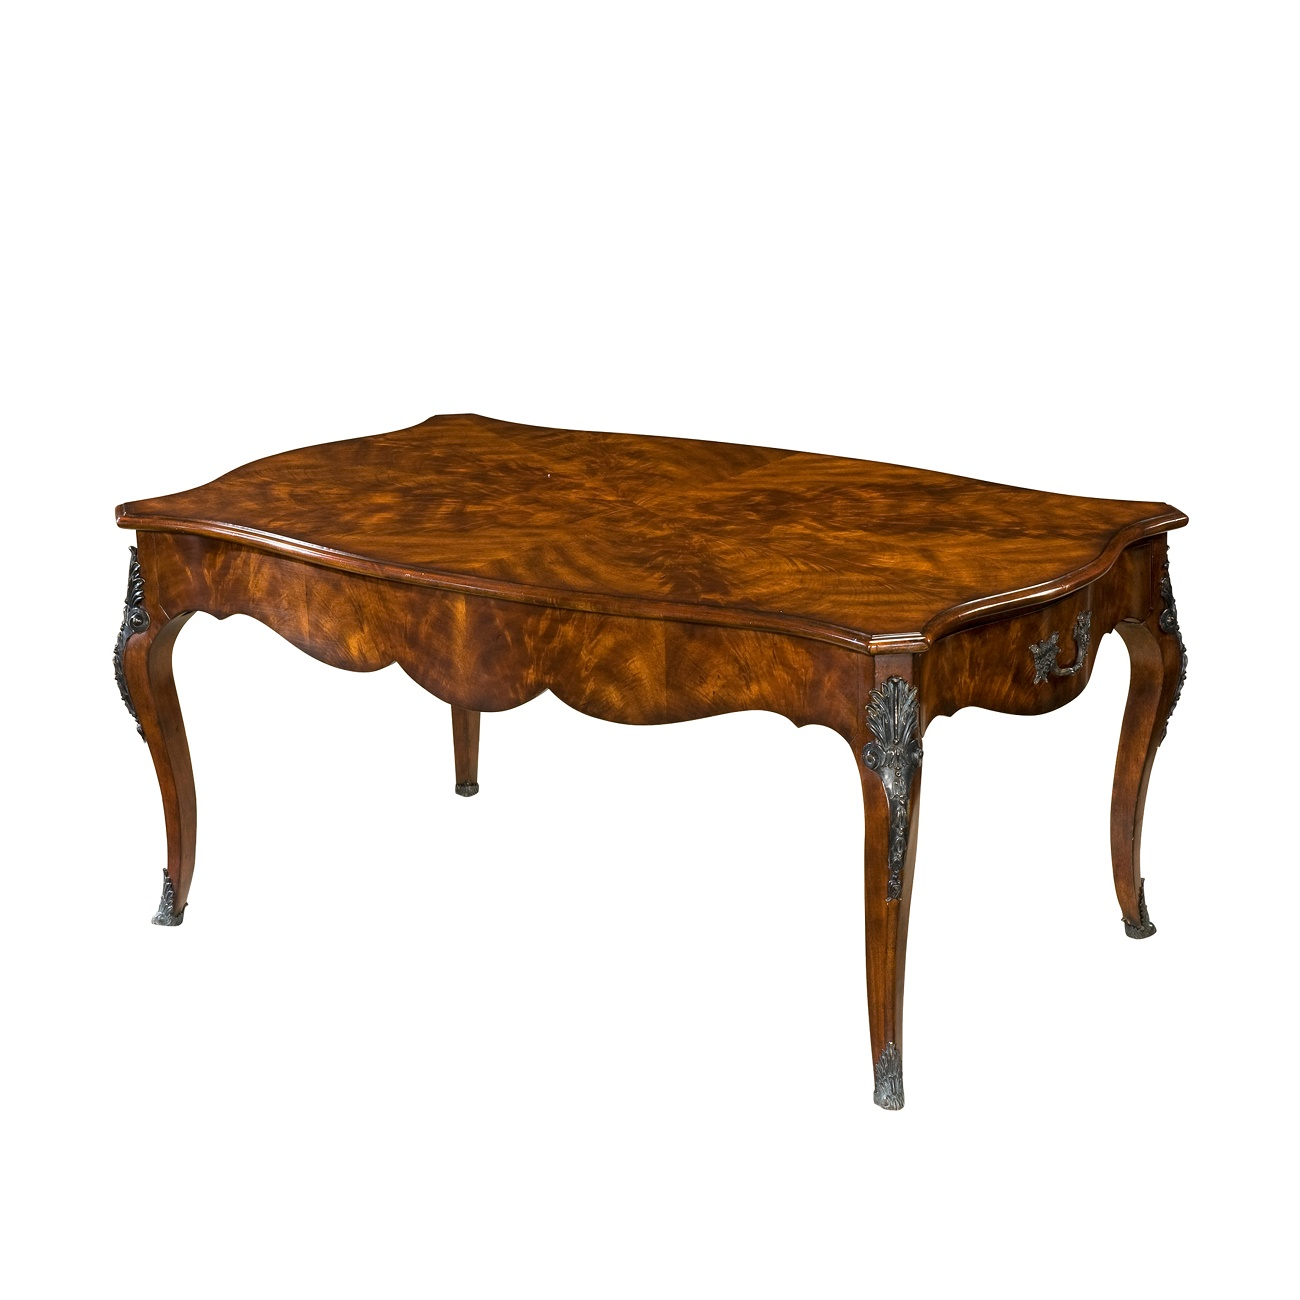 Theodore Alexander an Outstanding Flame cocktail table for Sale Brooklyn, New York